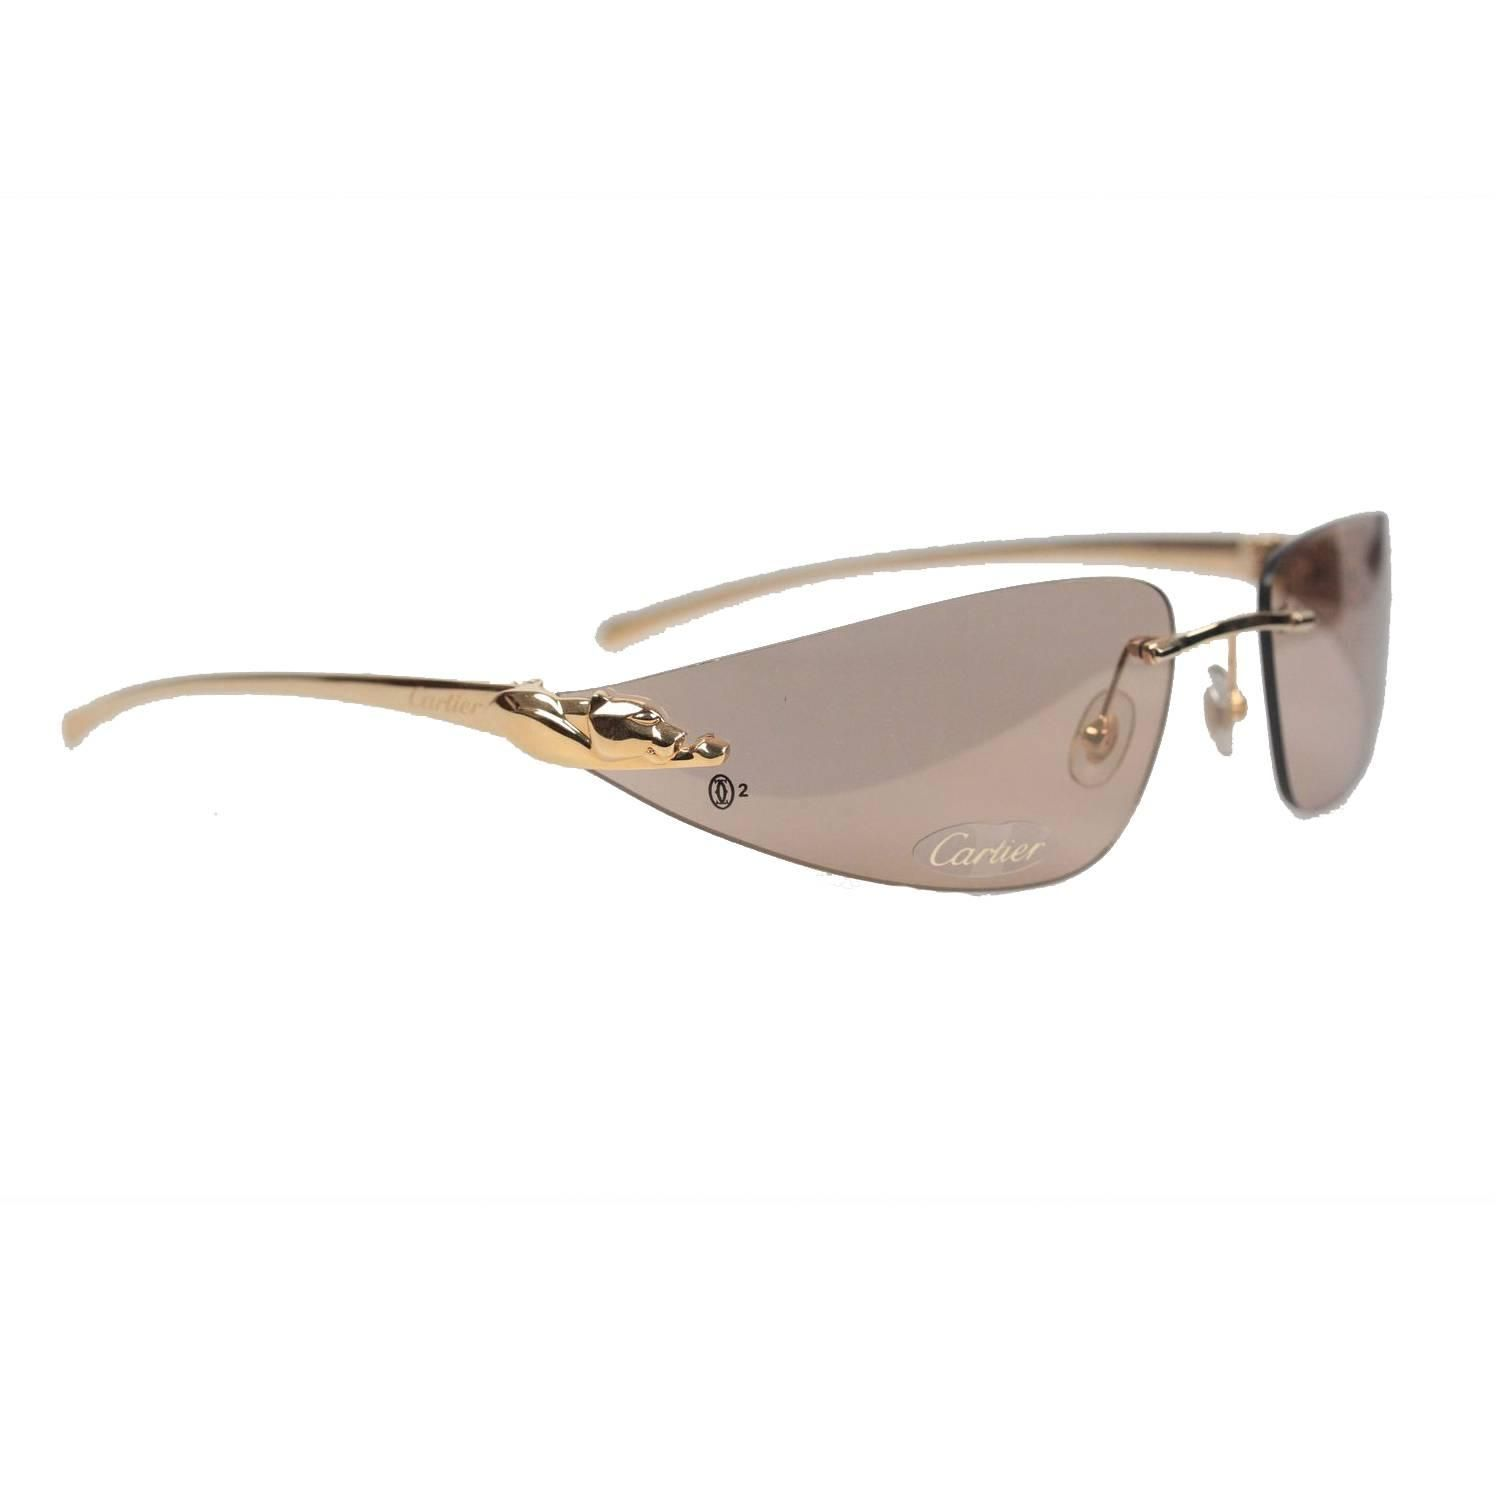 b4eac1ac689 Cartier Paris Sunglasses Panthere T8200611 Gold Brown 110 For Sale at  1stdibs